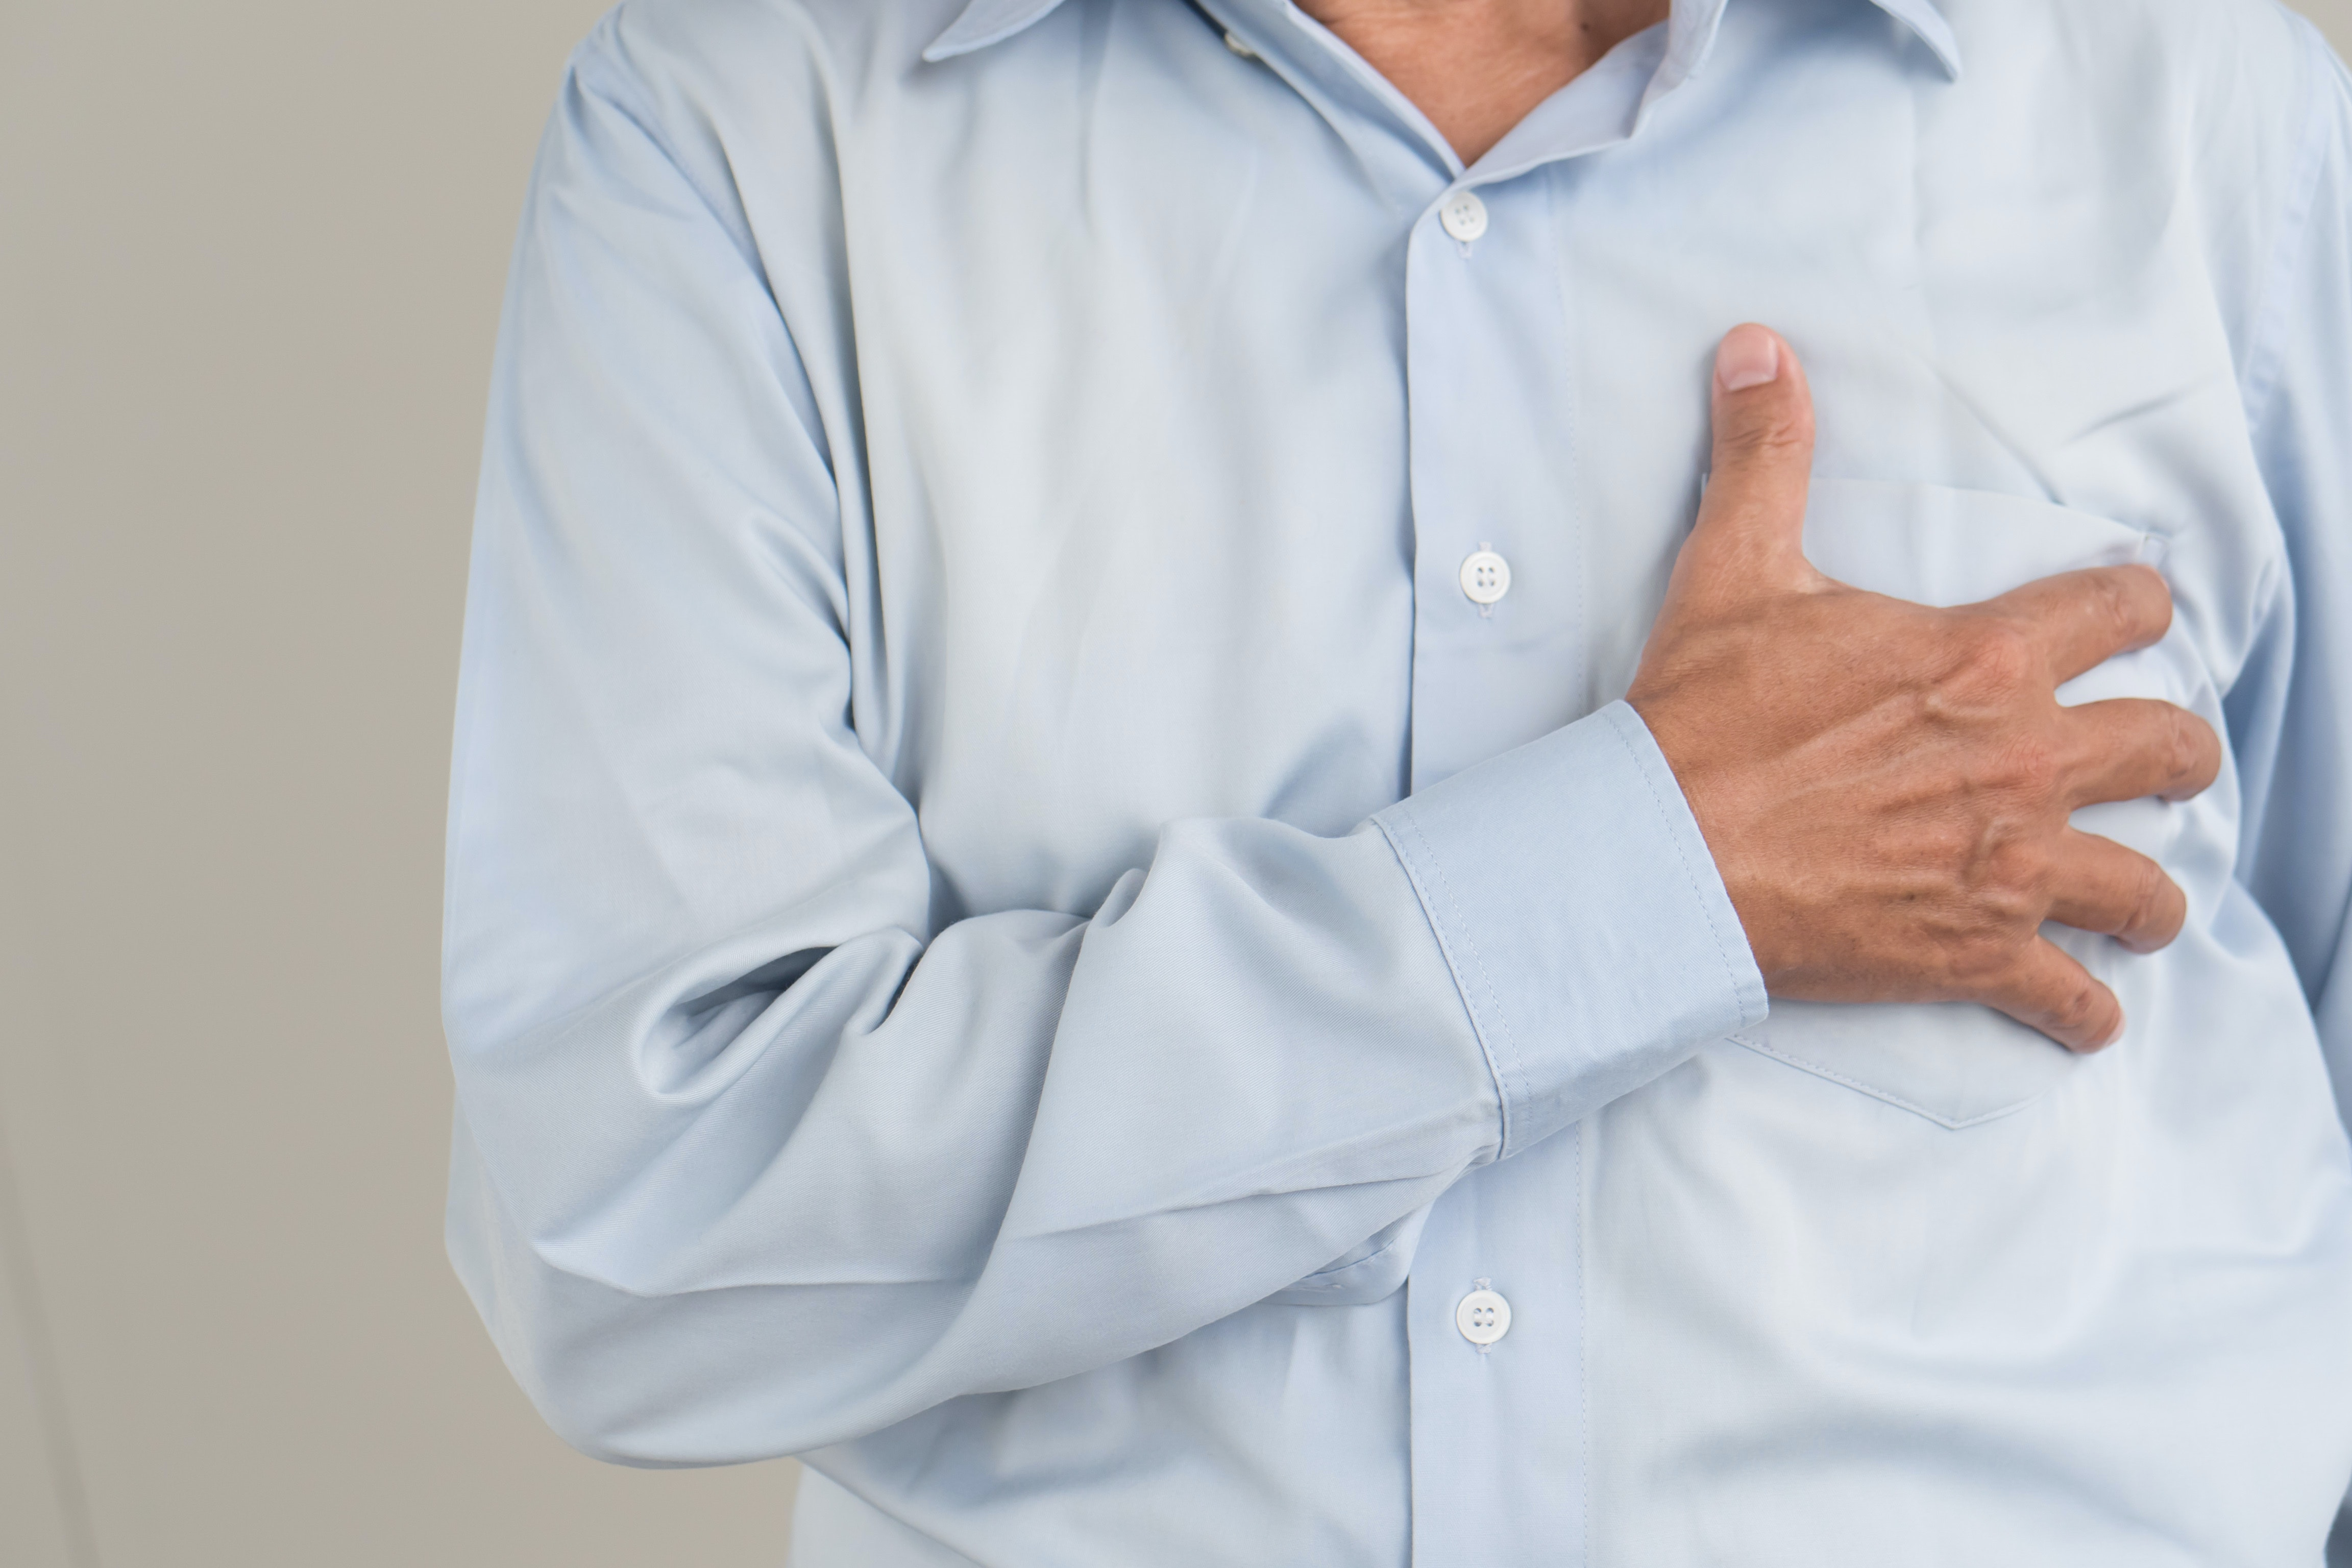 An image depicting a person suffering from mild chest pain symptoms